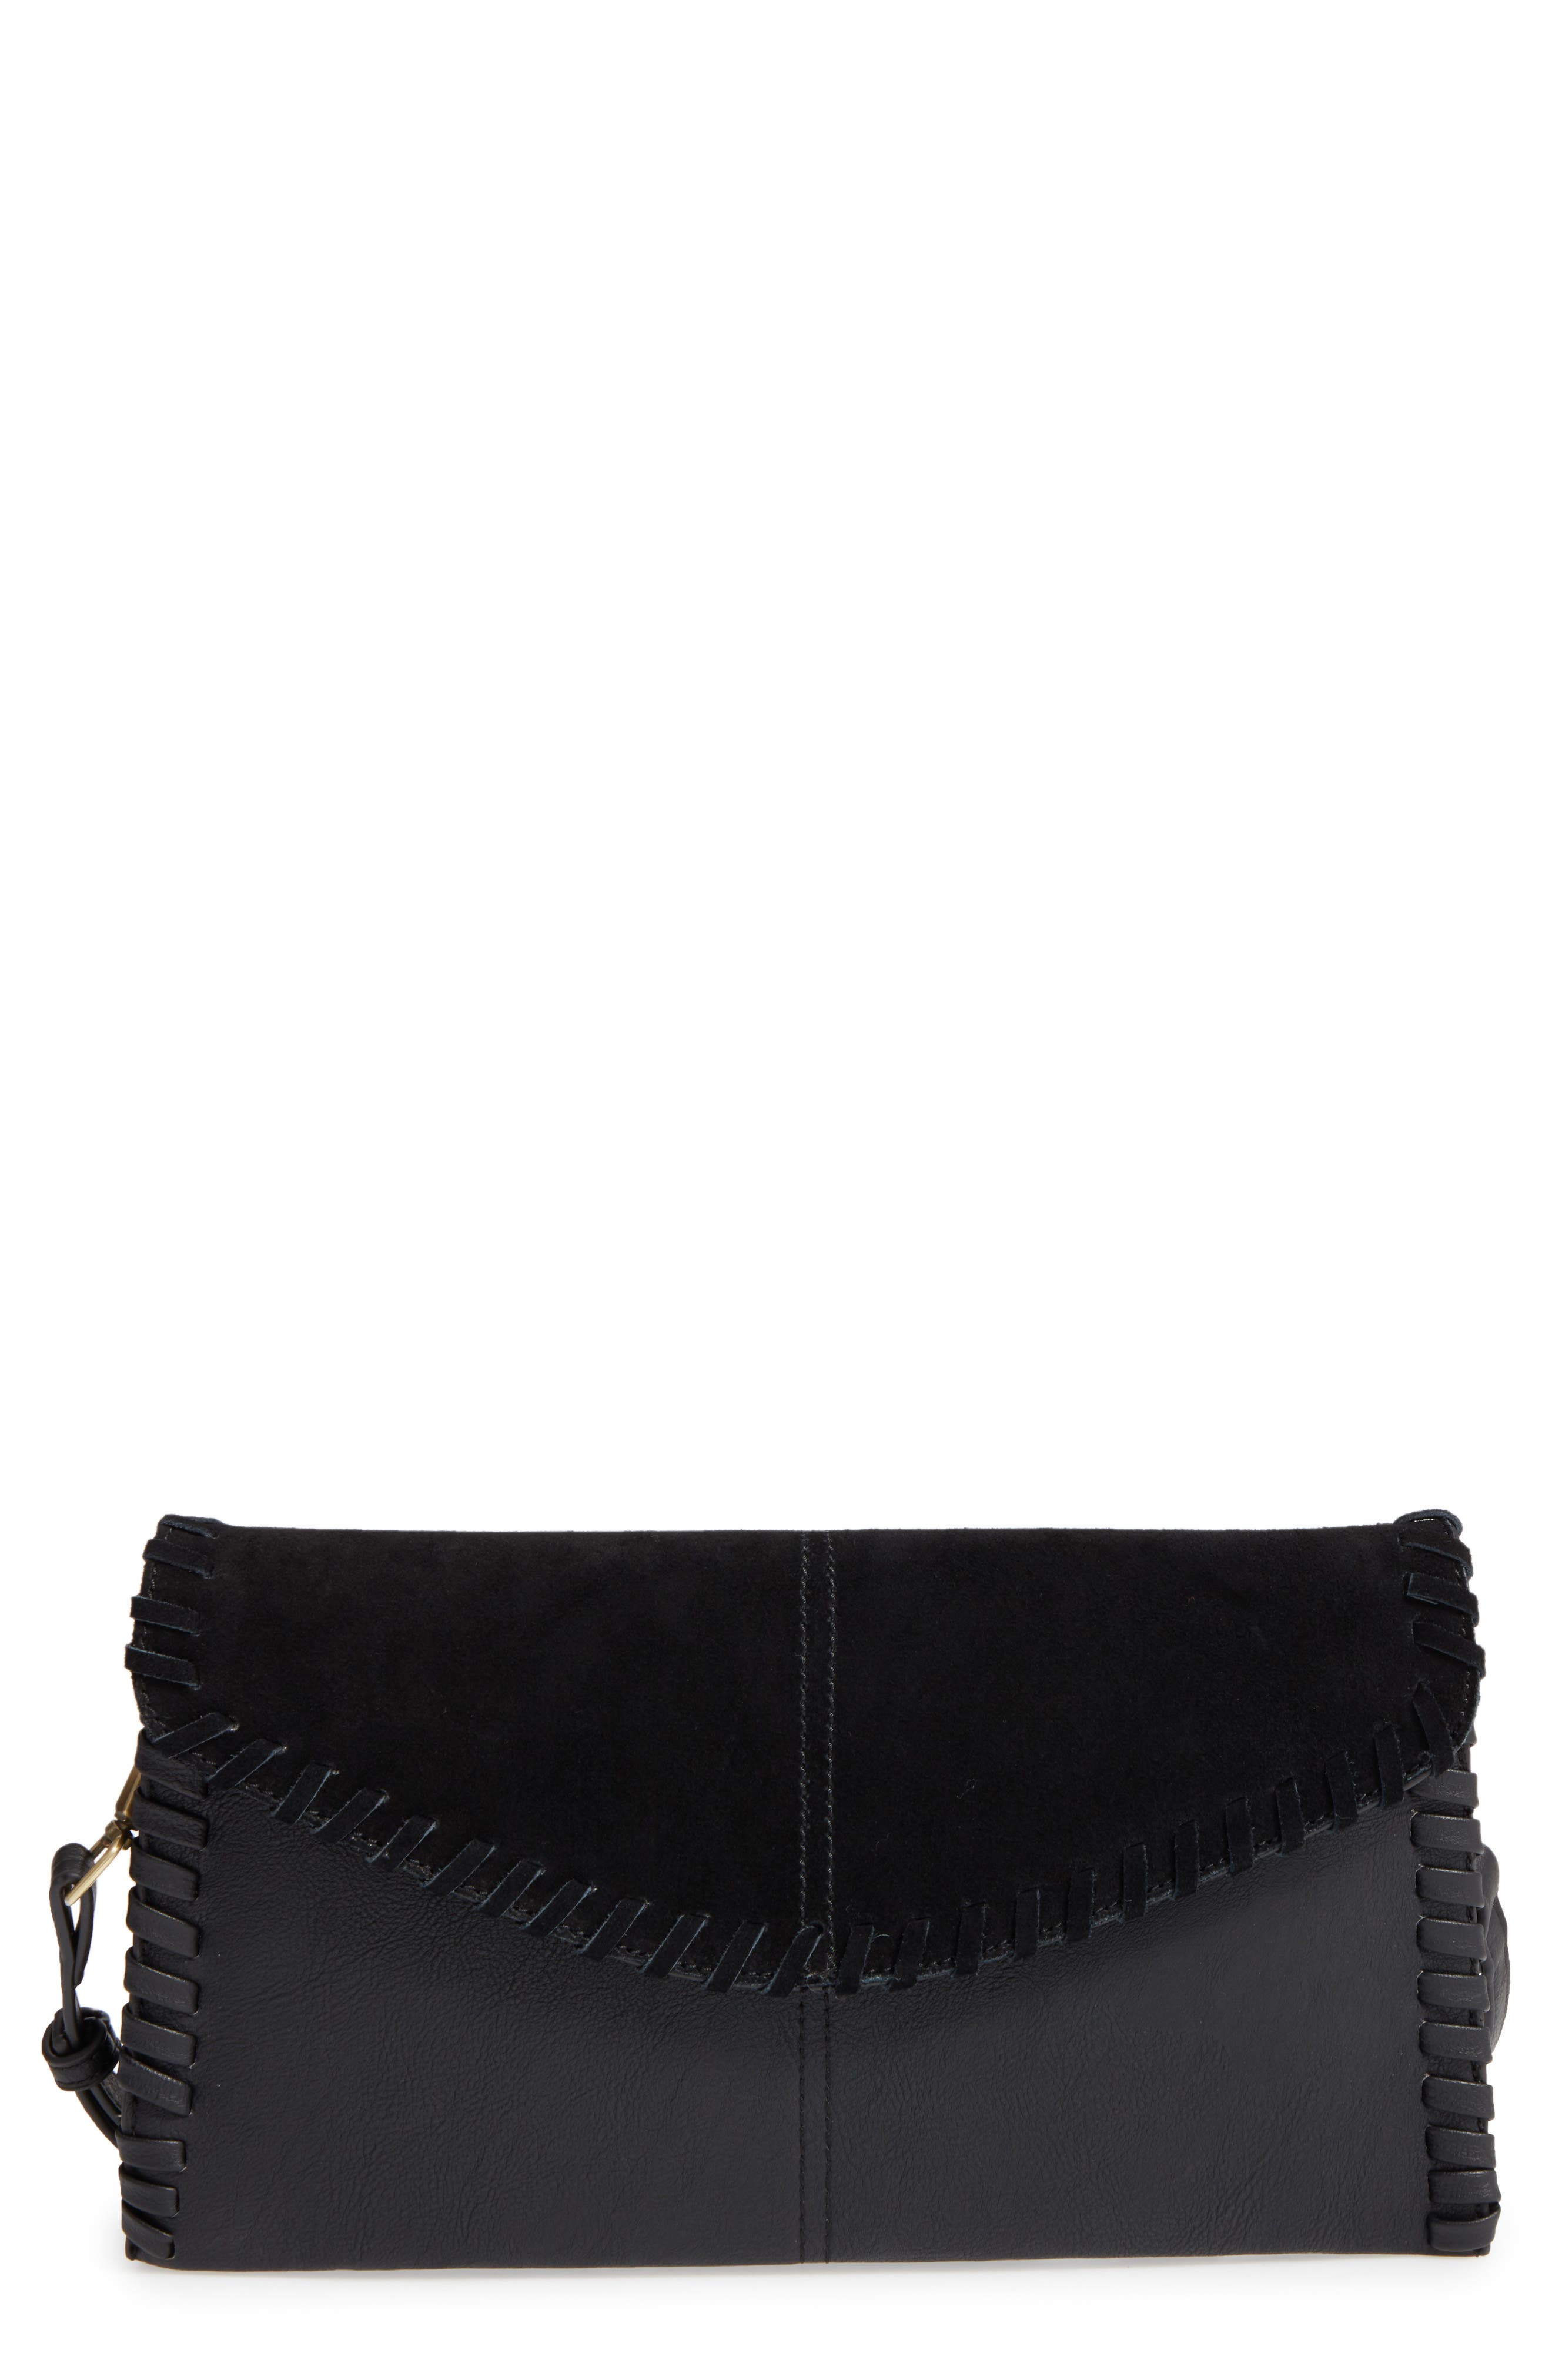 SOLE SOCIETY Waverly Whipstitch Clutch, Main, color, 001